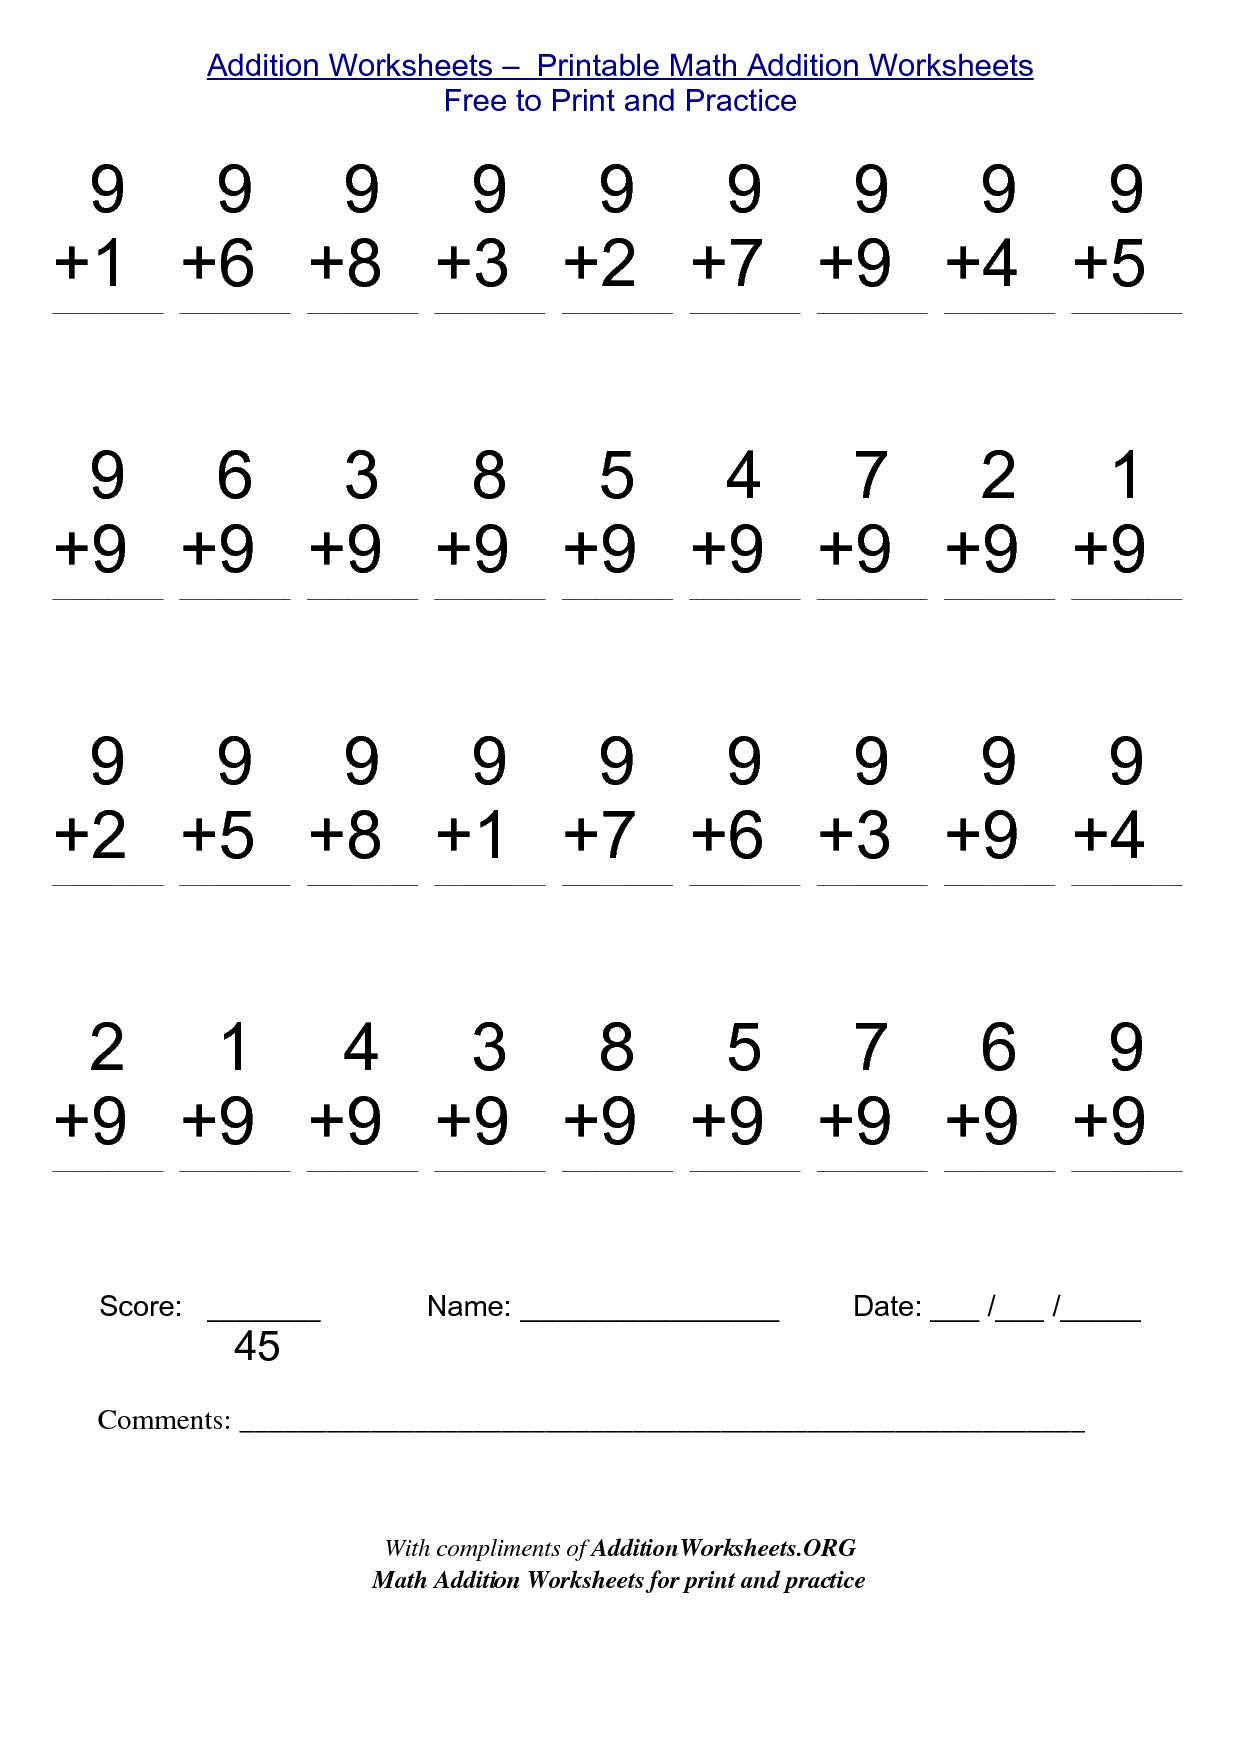 math worksheet : sheet printable images gallery category page 3  printablee  : Free Worksheets For 1st Grade Math